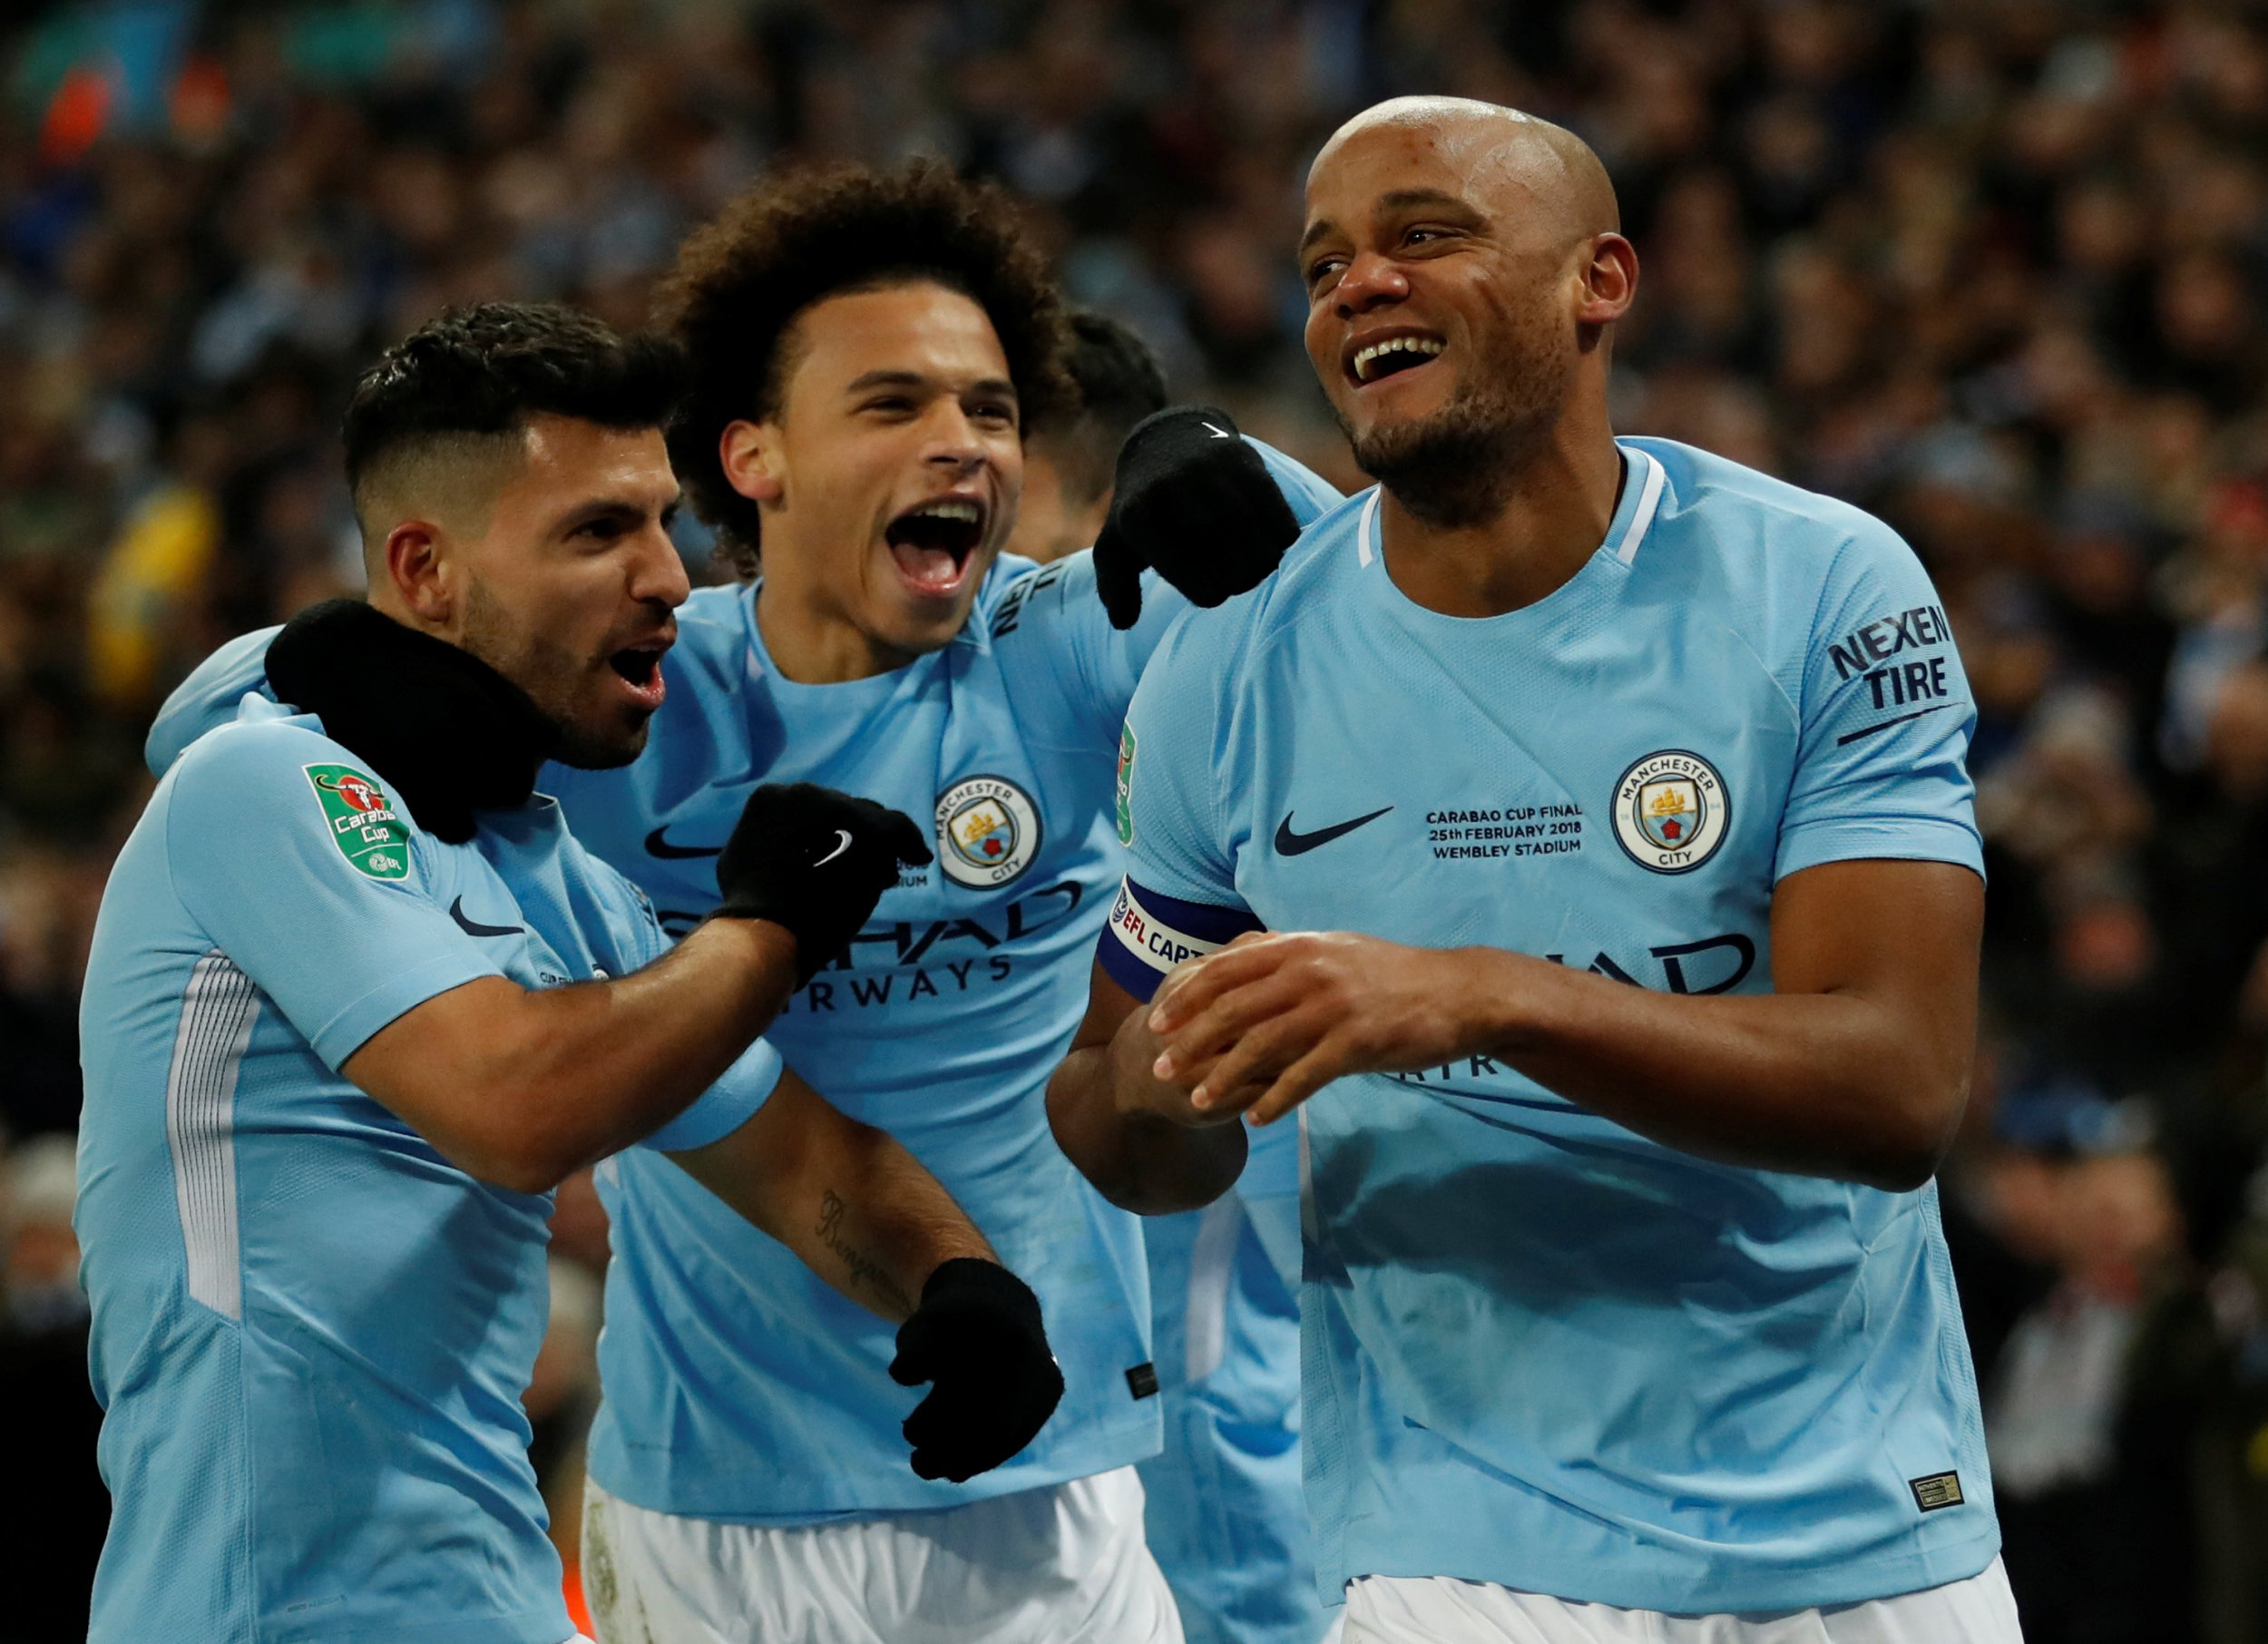 "Soccer Football - Carabao Cup Final - Arsenal vs Manchester City - Wembley Stadium, London, Britain - February 25, 2018 Manchester City's Vincent Kompany celebrates scoring their second goal with Leroy Sane and Sergio Aguero Action Images via Reuters/Carl Recine EDITORIAL USE ONLY. No use with unauthorized audio, video, data, fixture lists, club/league logos or ""live"" services. Online in-match use limited to 75 images, no video emulation. No use in betting, games or single club/league/player publications. Please contact your account representative for further details."